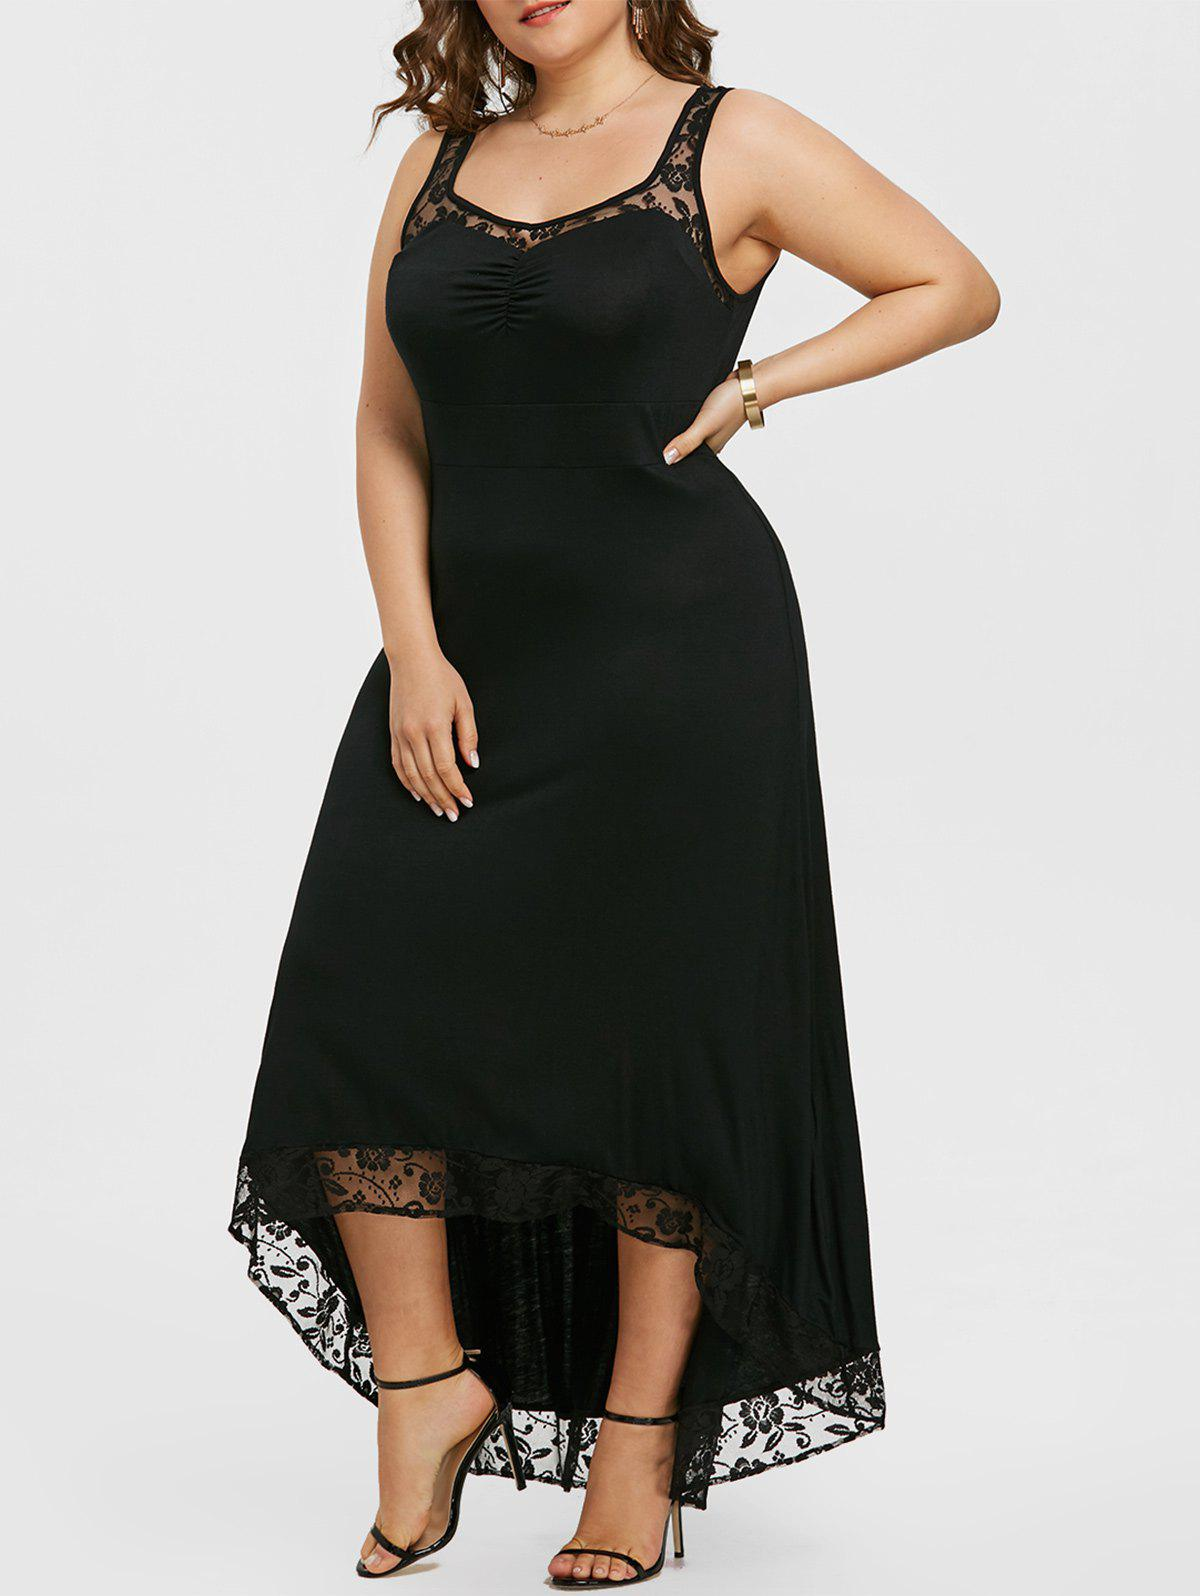 Plus Size Prom Dresses - Black, Red And Long Sleeve Cheap With ...